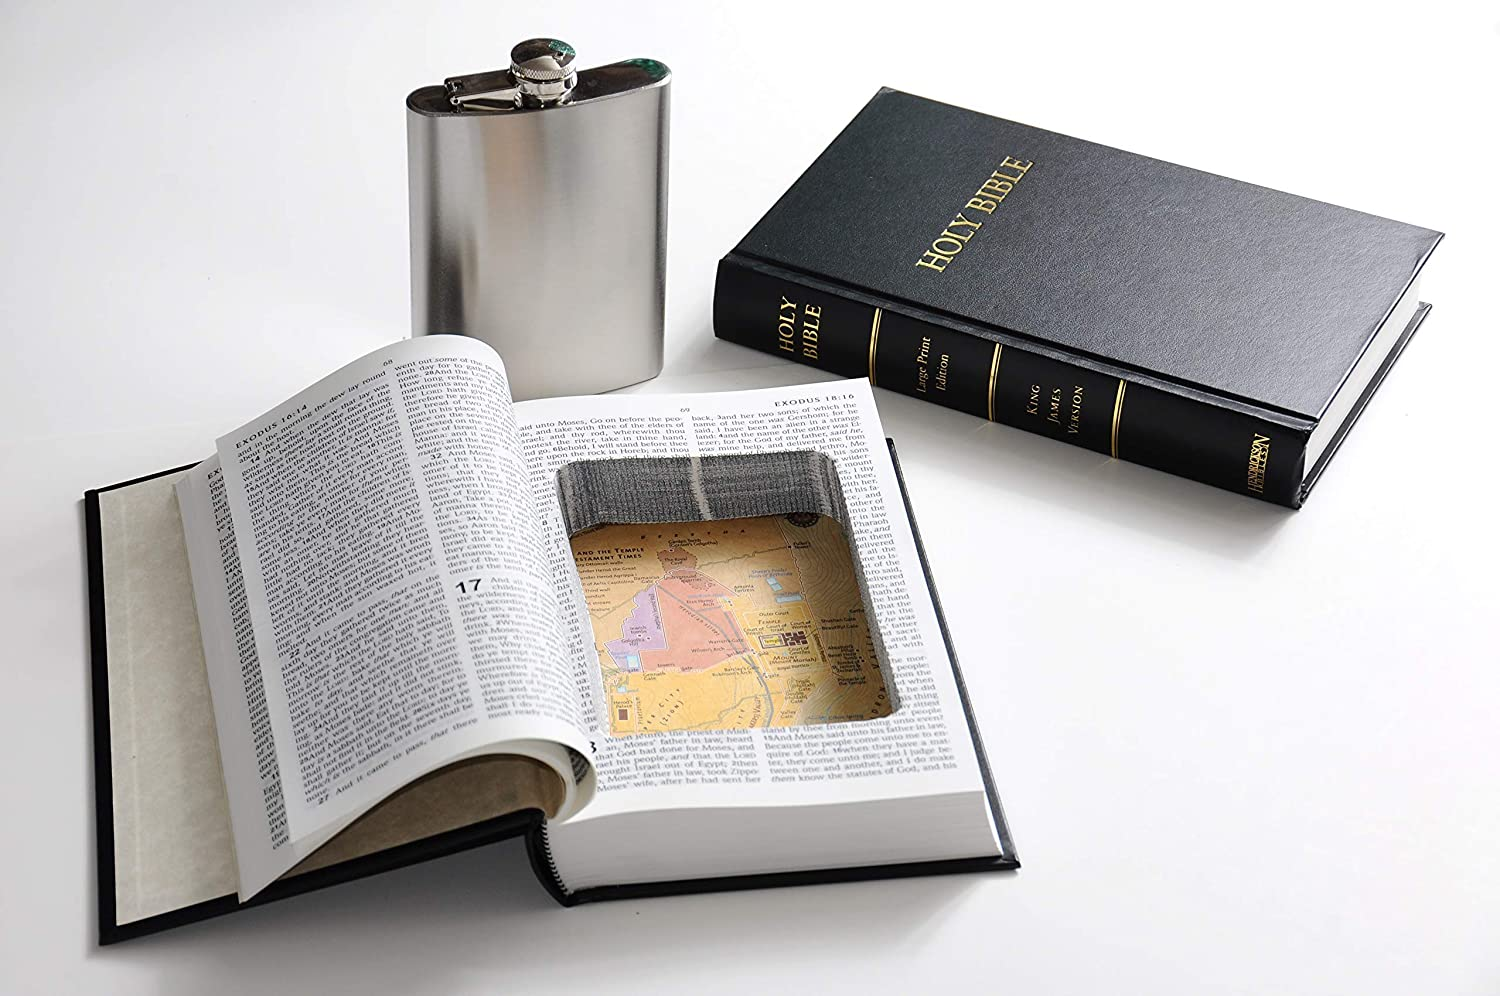 Angel or Devil Halloween Costume Accessory - Black Holy Bible Book Safe w/ 8oz Hidden Steel Flask - Nun Jesus Pope Priest Moses Supernatural